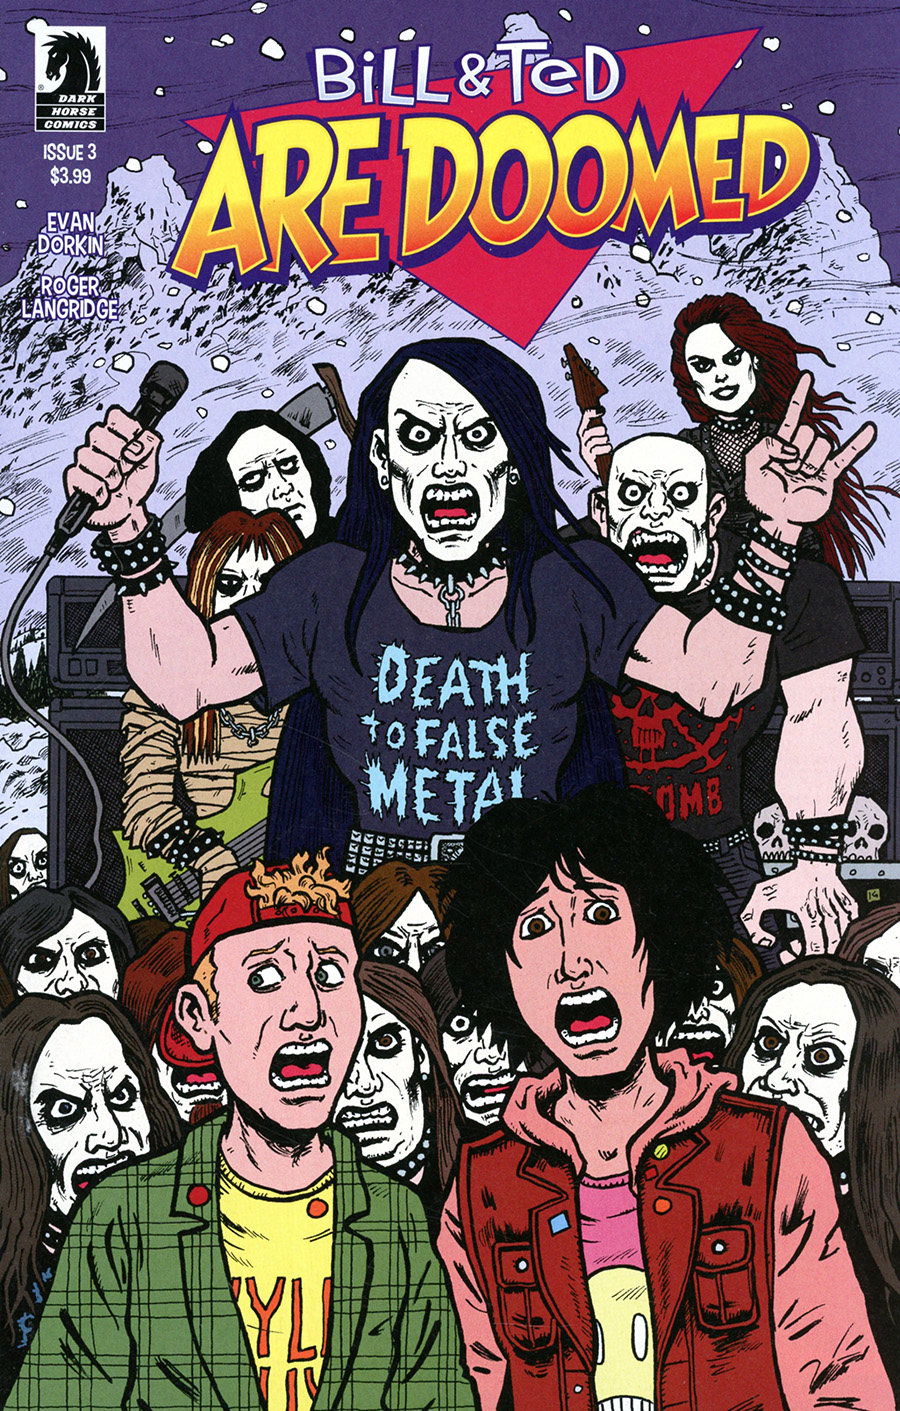 Bill & Ted Are Doomed #3 Cover A Regular Evan Dorkin & Sarah Dyer Cover